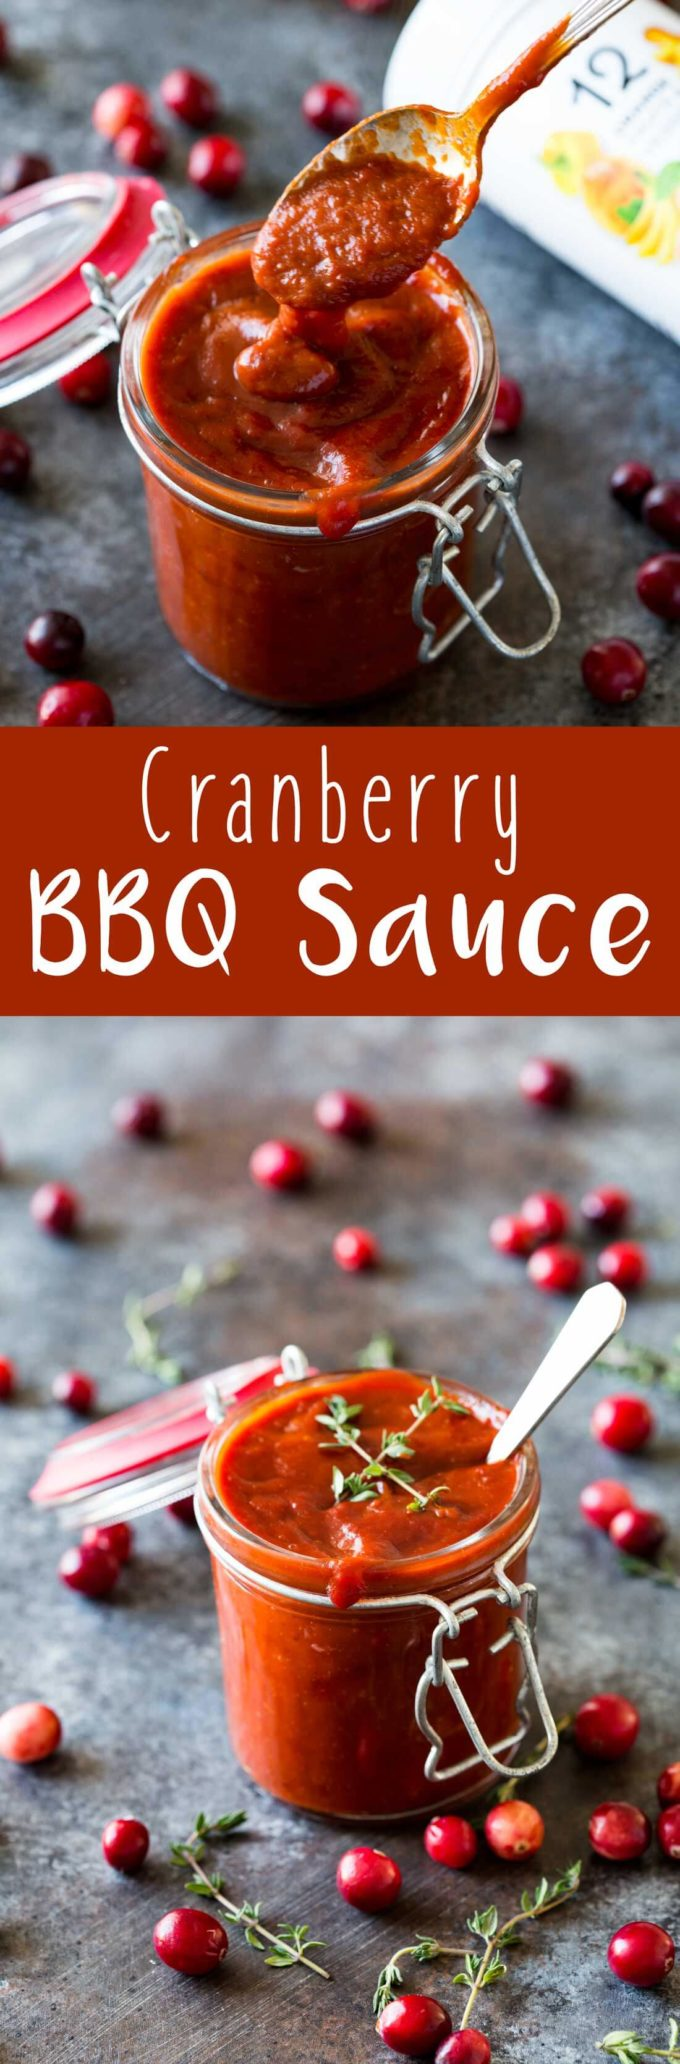 Easy Cranberry BBQ sauce. This seasonal sauce is good on everything from leftover turkey sandwiches to meatballs served as appetizers.